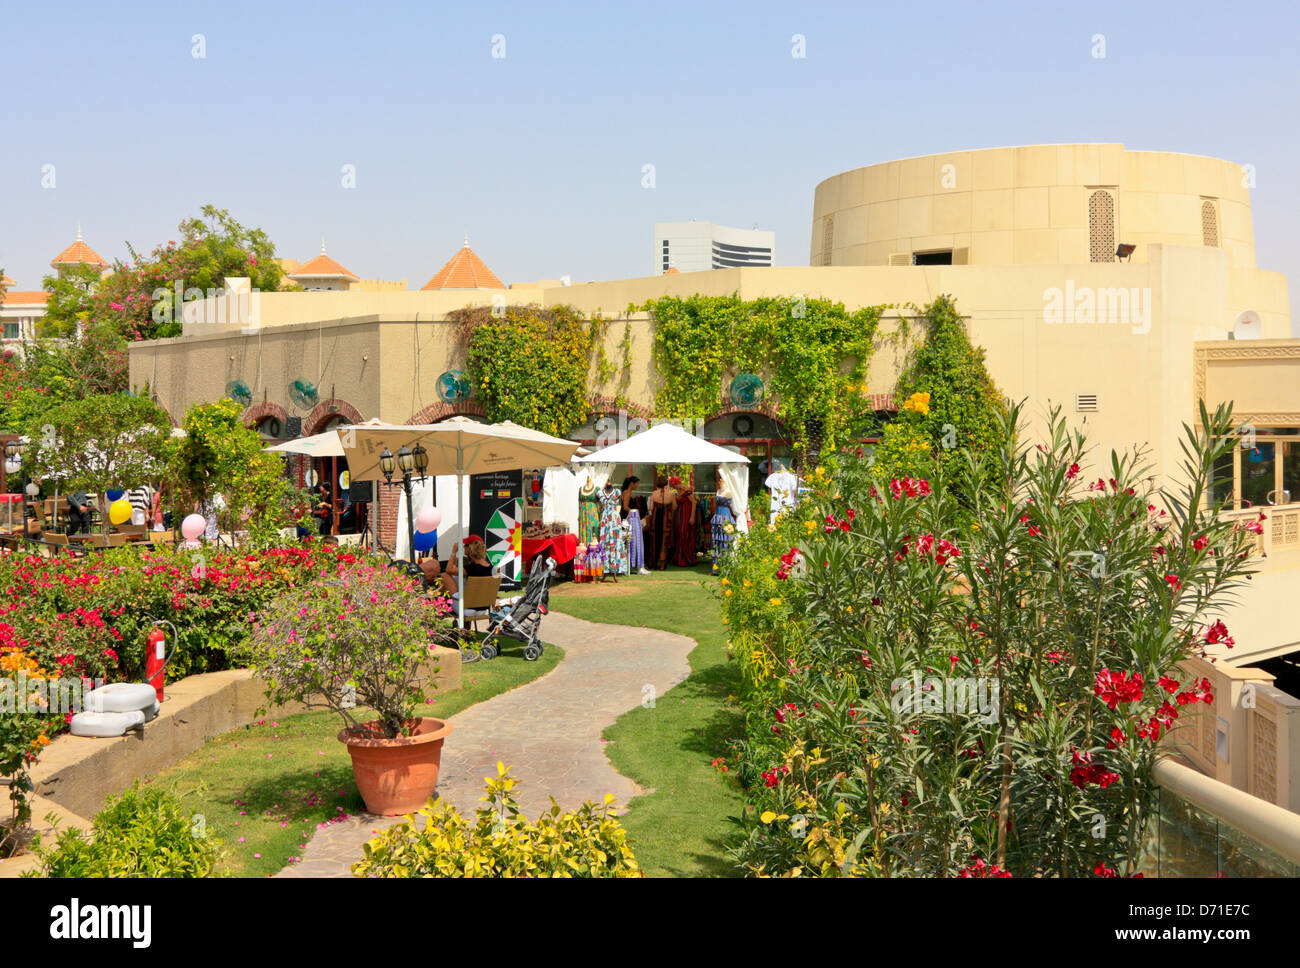 Roof Top Garden With Open Air Restaurants And Cafe At The Wafi Stock Photo Alamy